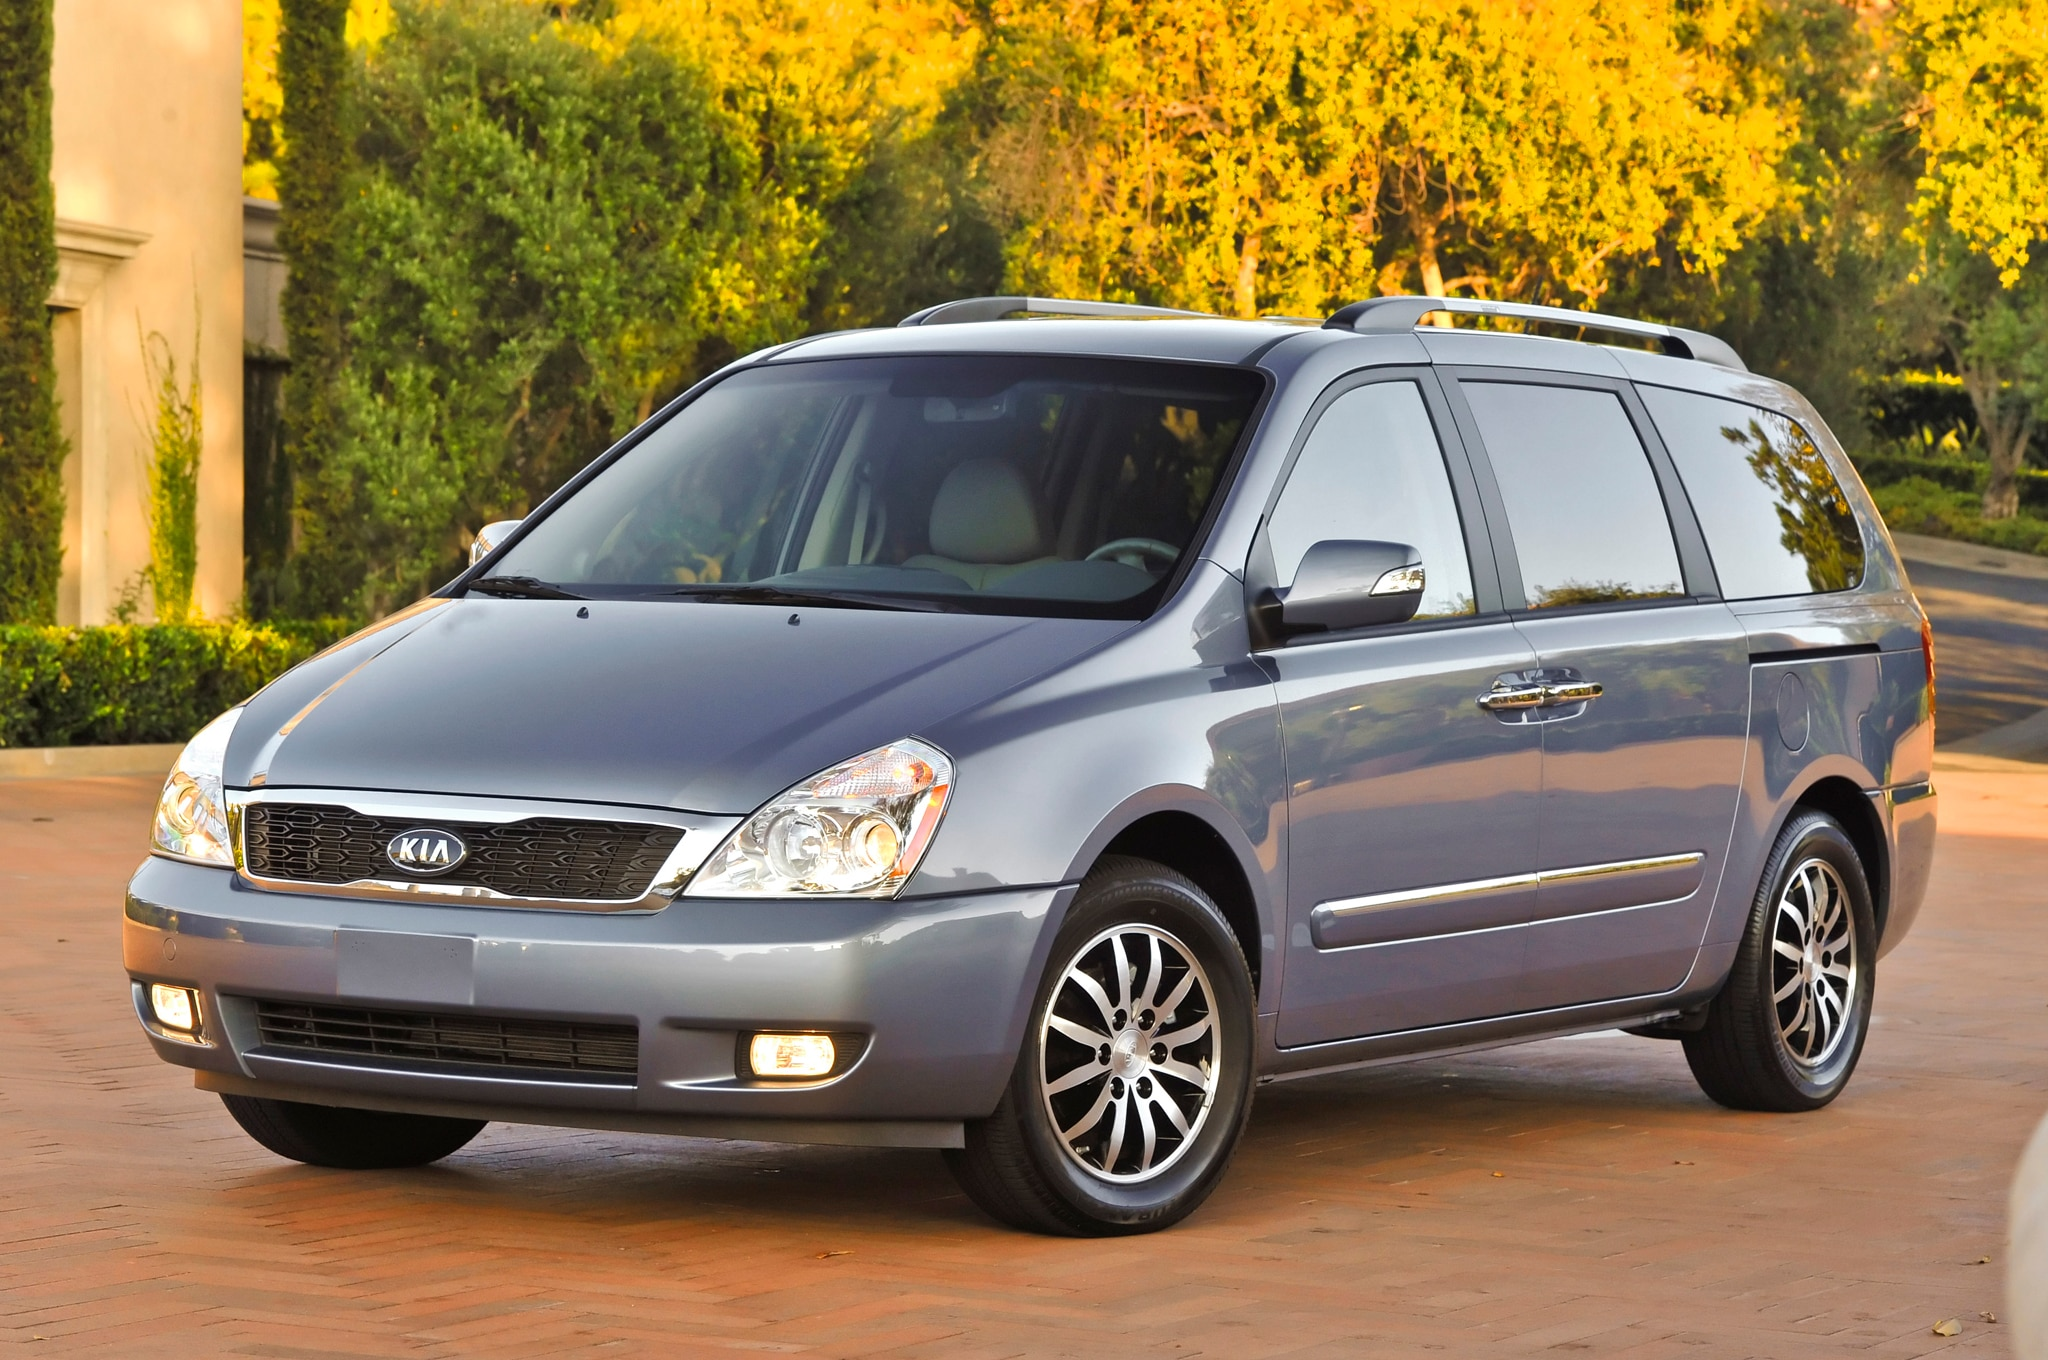 2012 Kia Sedona Front Three Quarter1